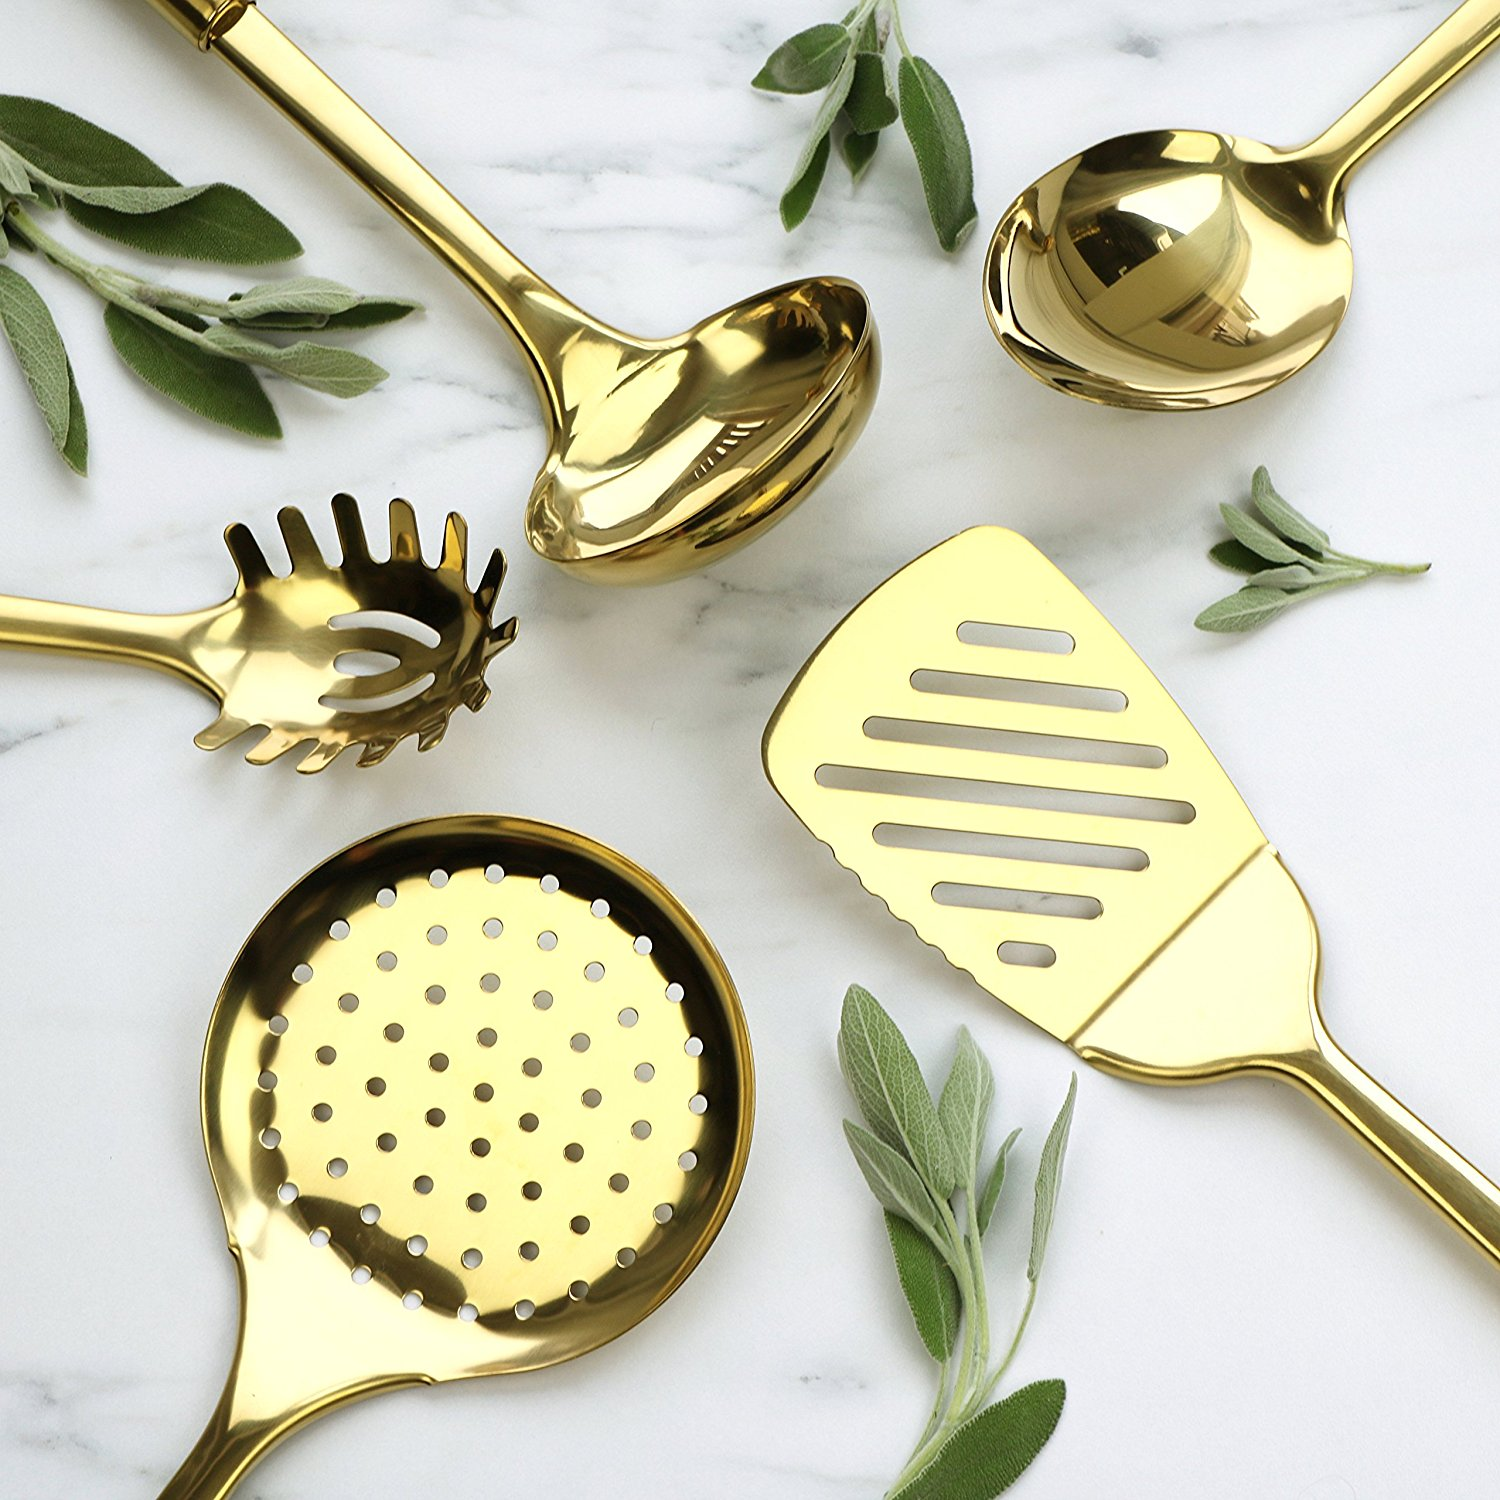 2018 New Design Stainless Steel Gold Cooking Utensils Set Spatula / Slotted Spoon